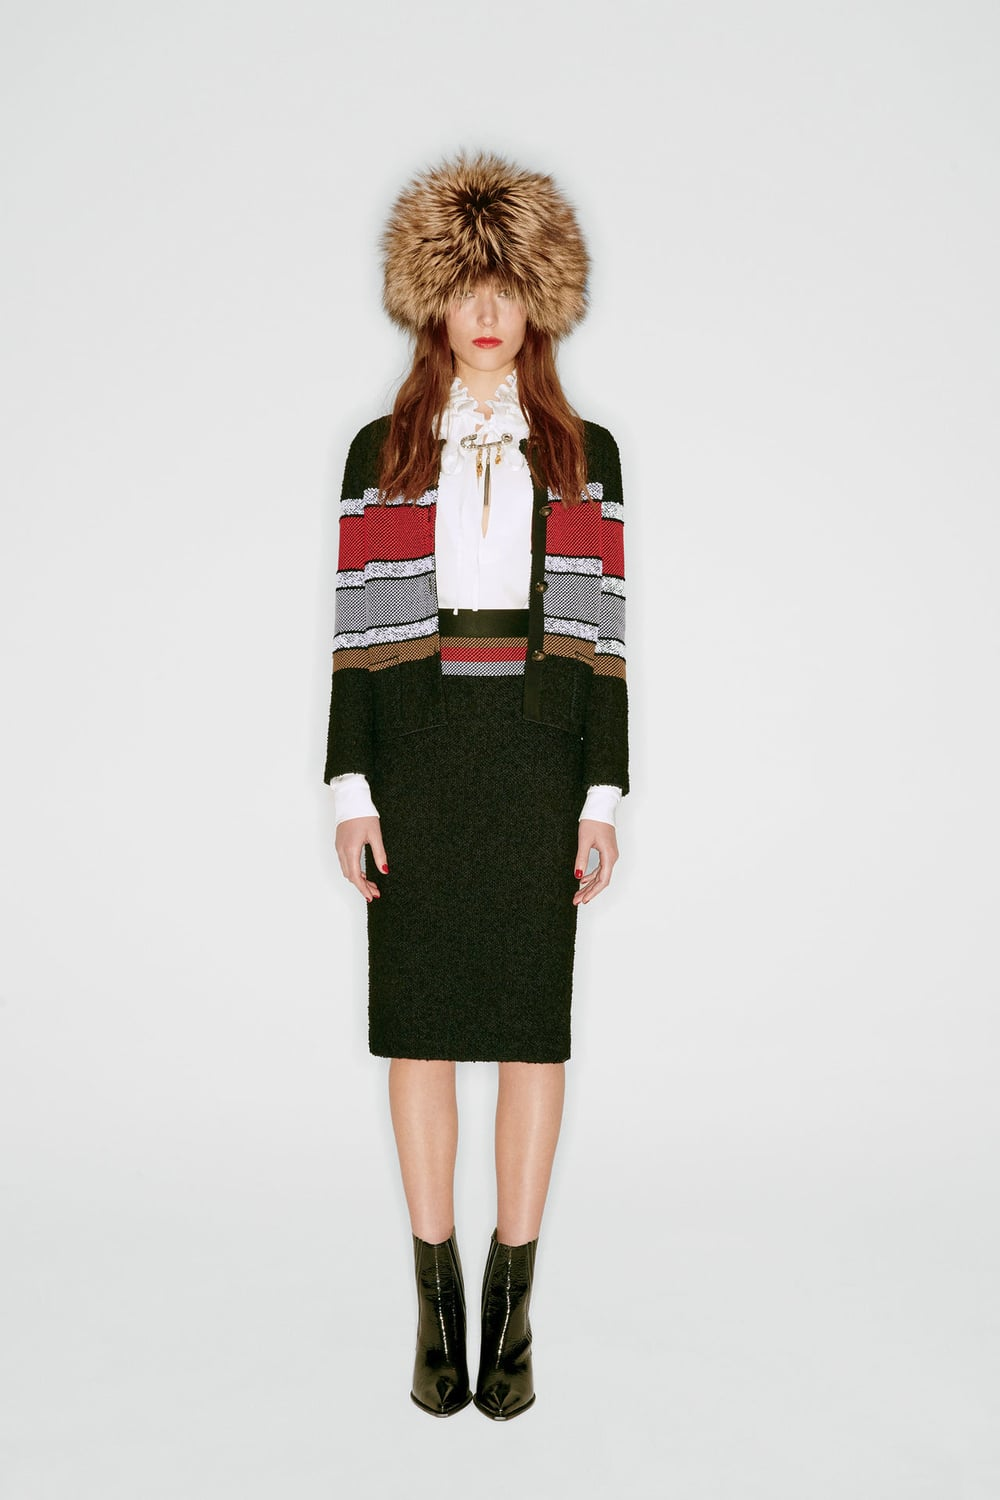 sonia_rykiel_pre_fall_2016_look_book_04.jpg